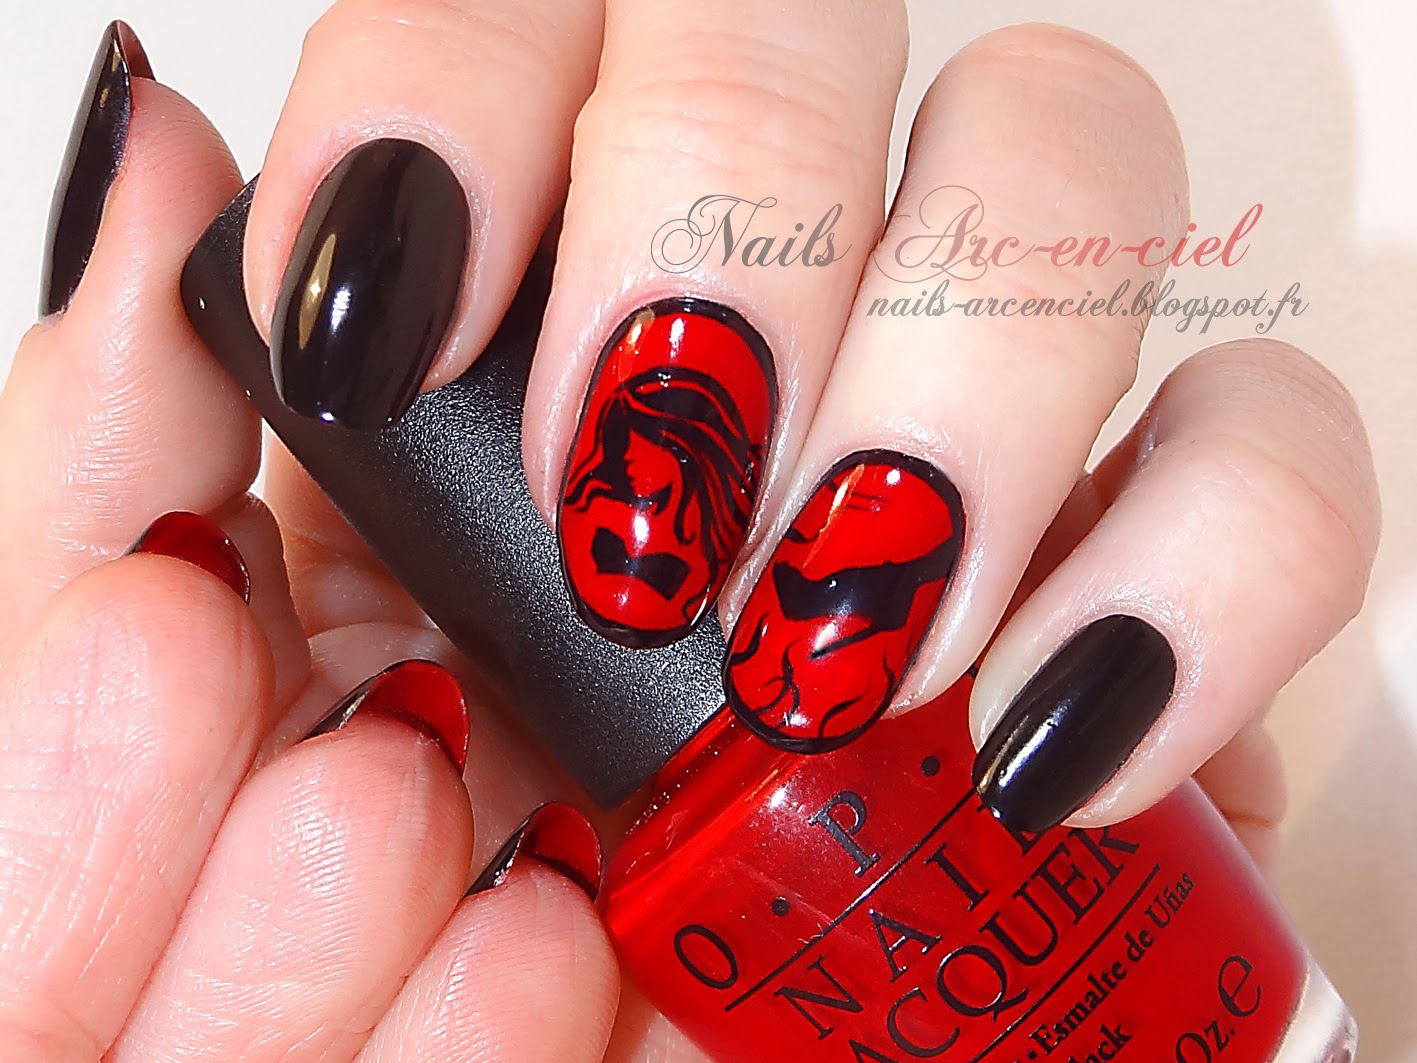 Flip manucure louboutin vernis opi big apple red opi lady in black